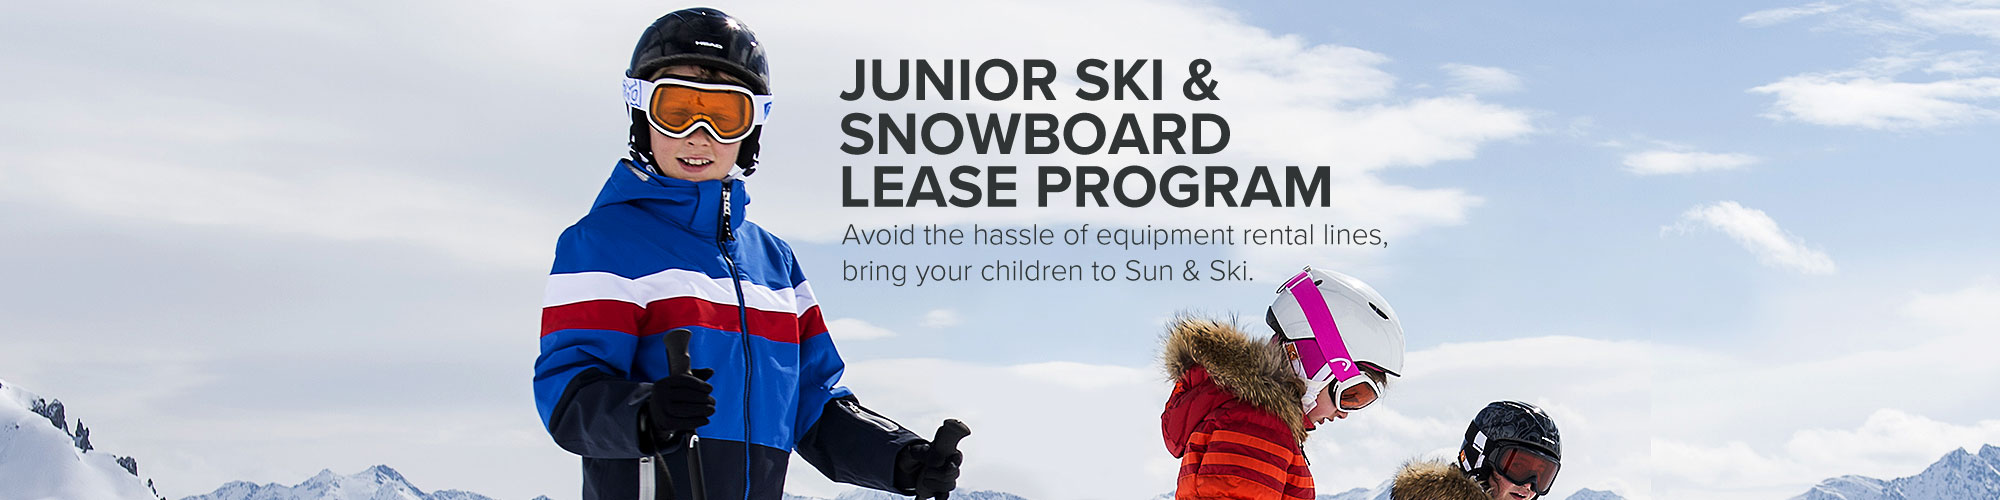 Junior Ski and Snowboard Lease Program